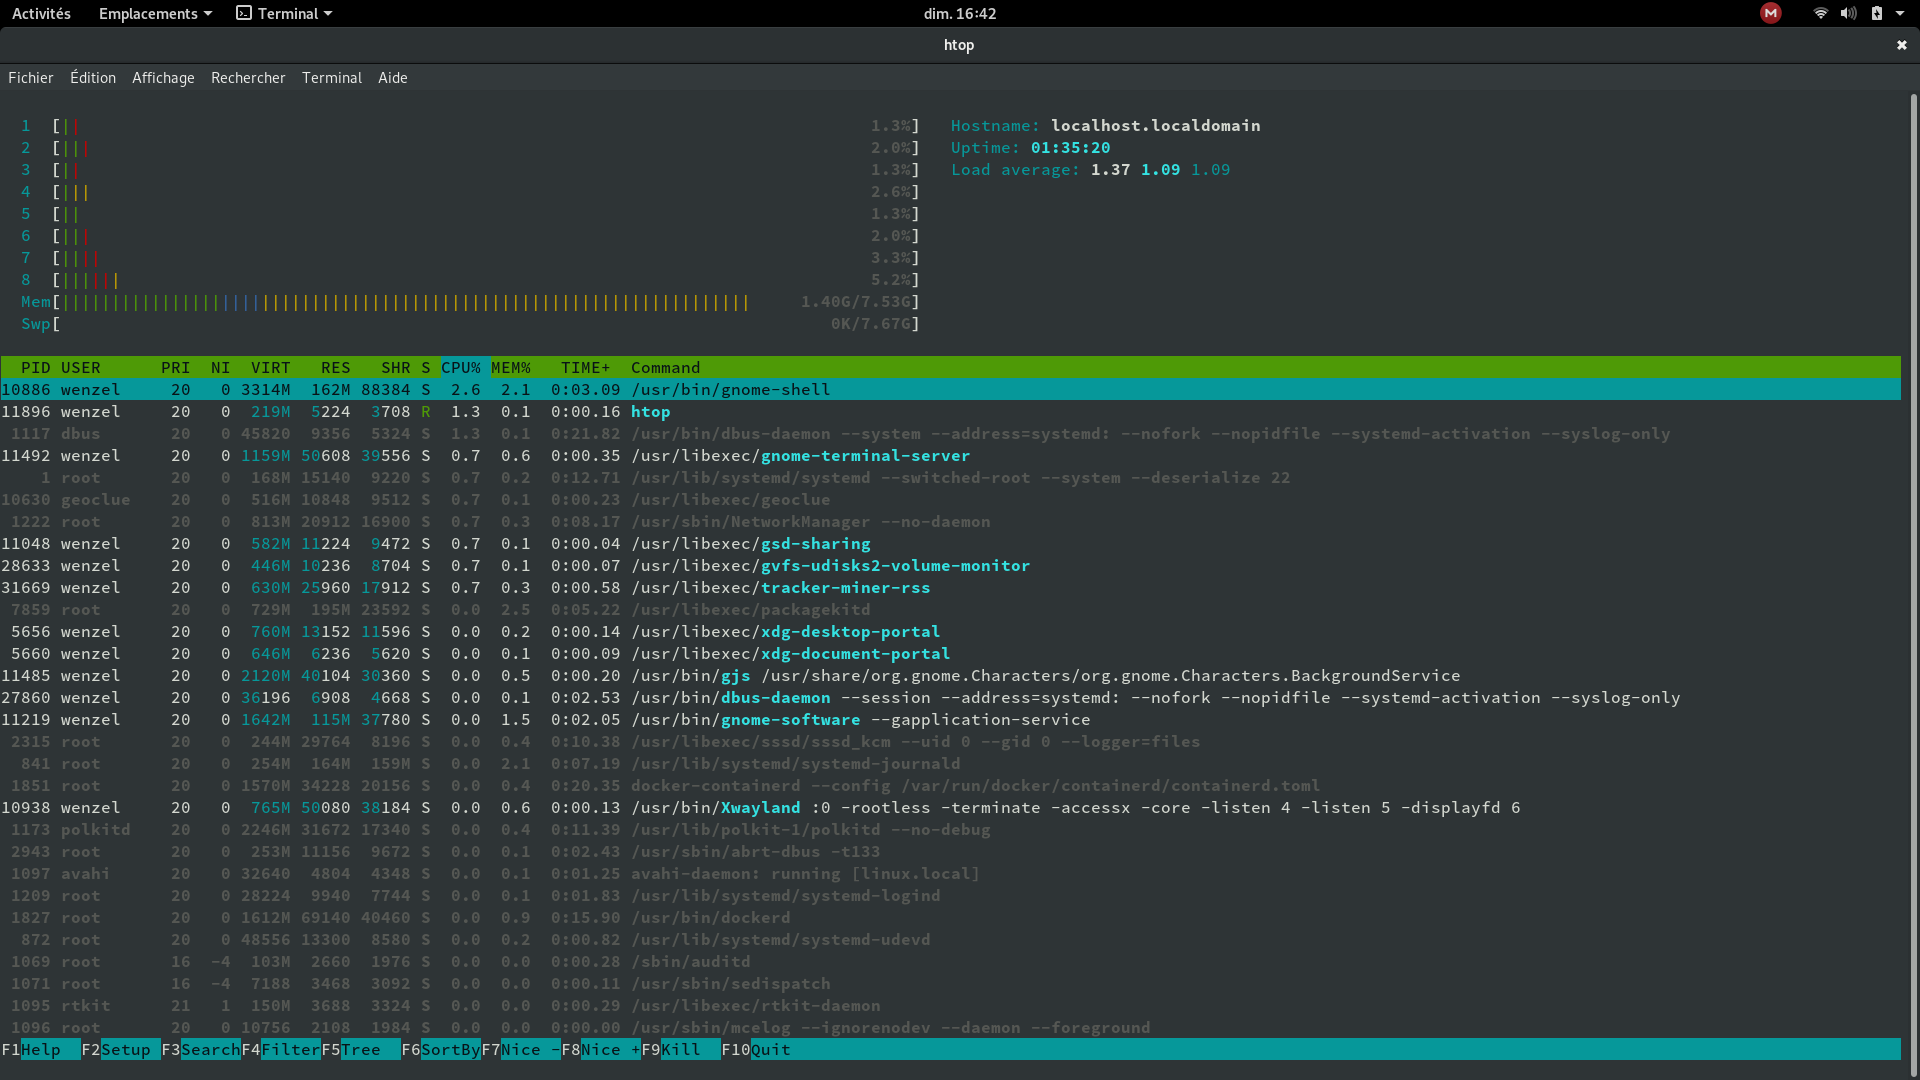 Pleased to see that KDE has the lower RAM usage compared to